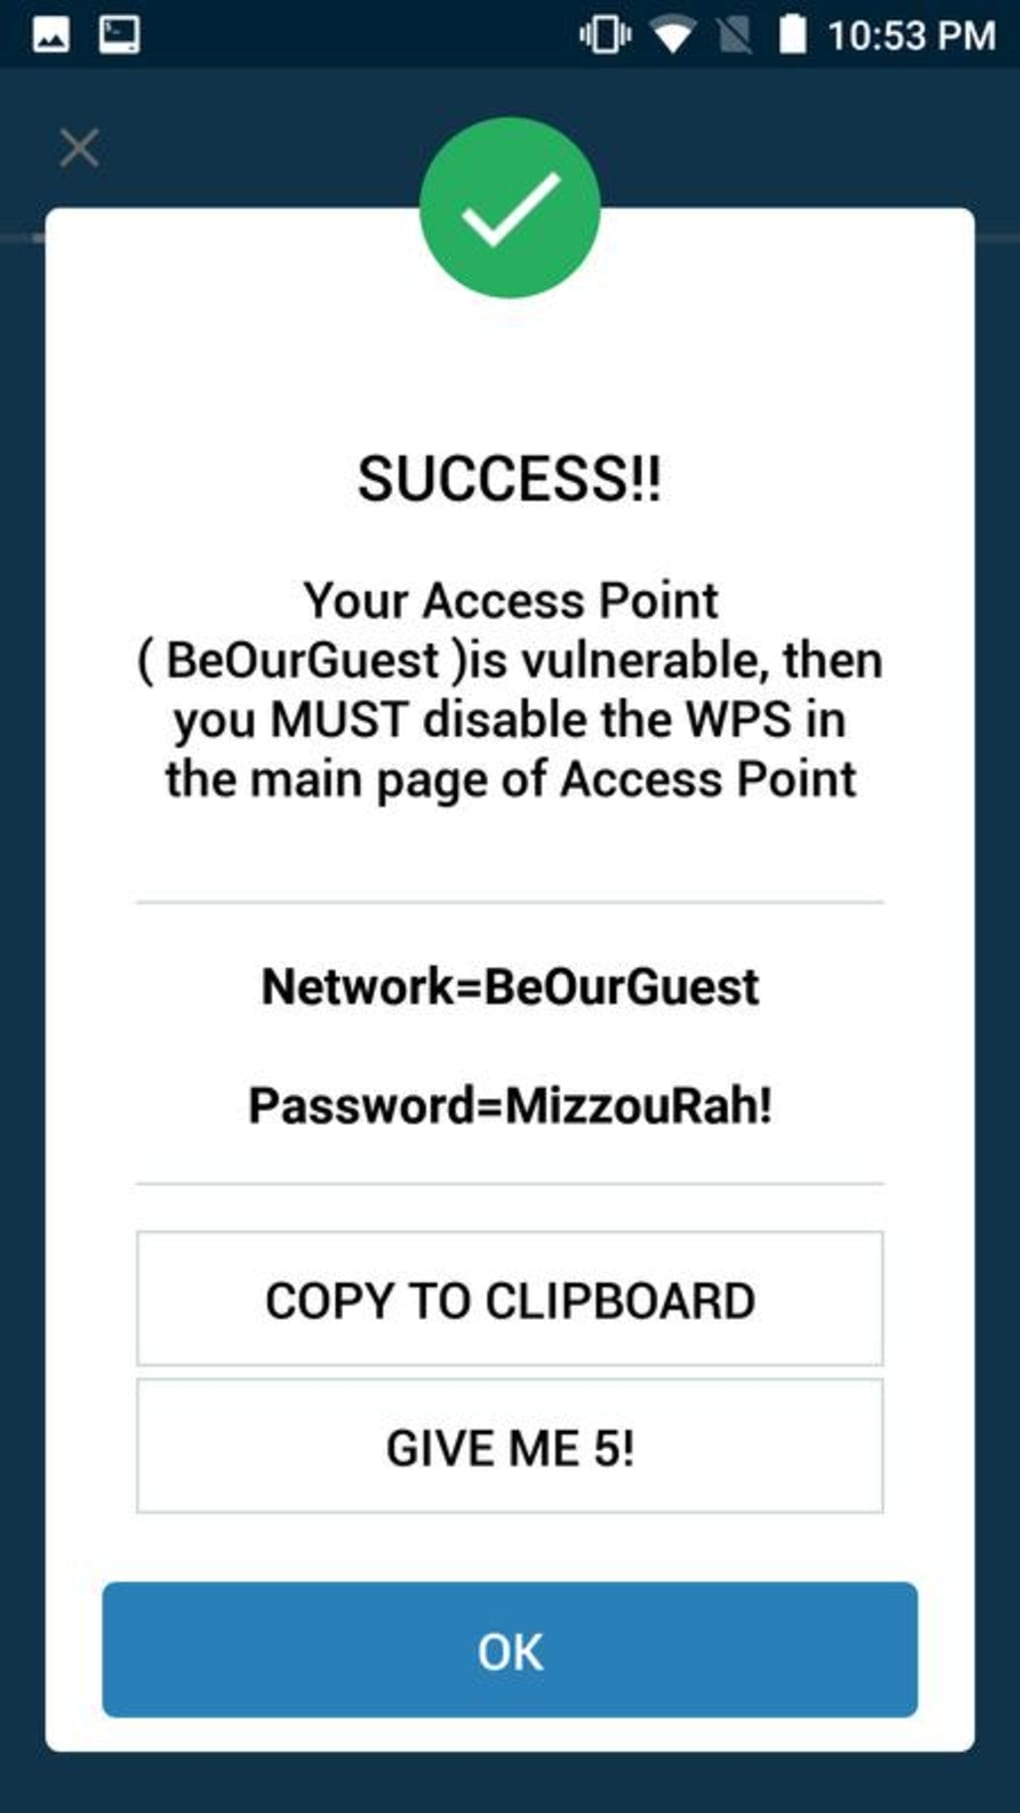 WIFI WPS WPA TESTER for Android - Download